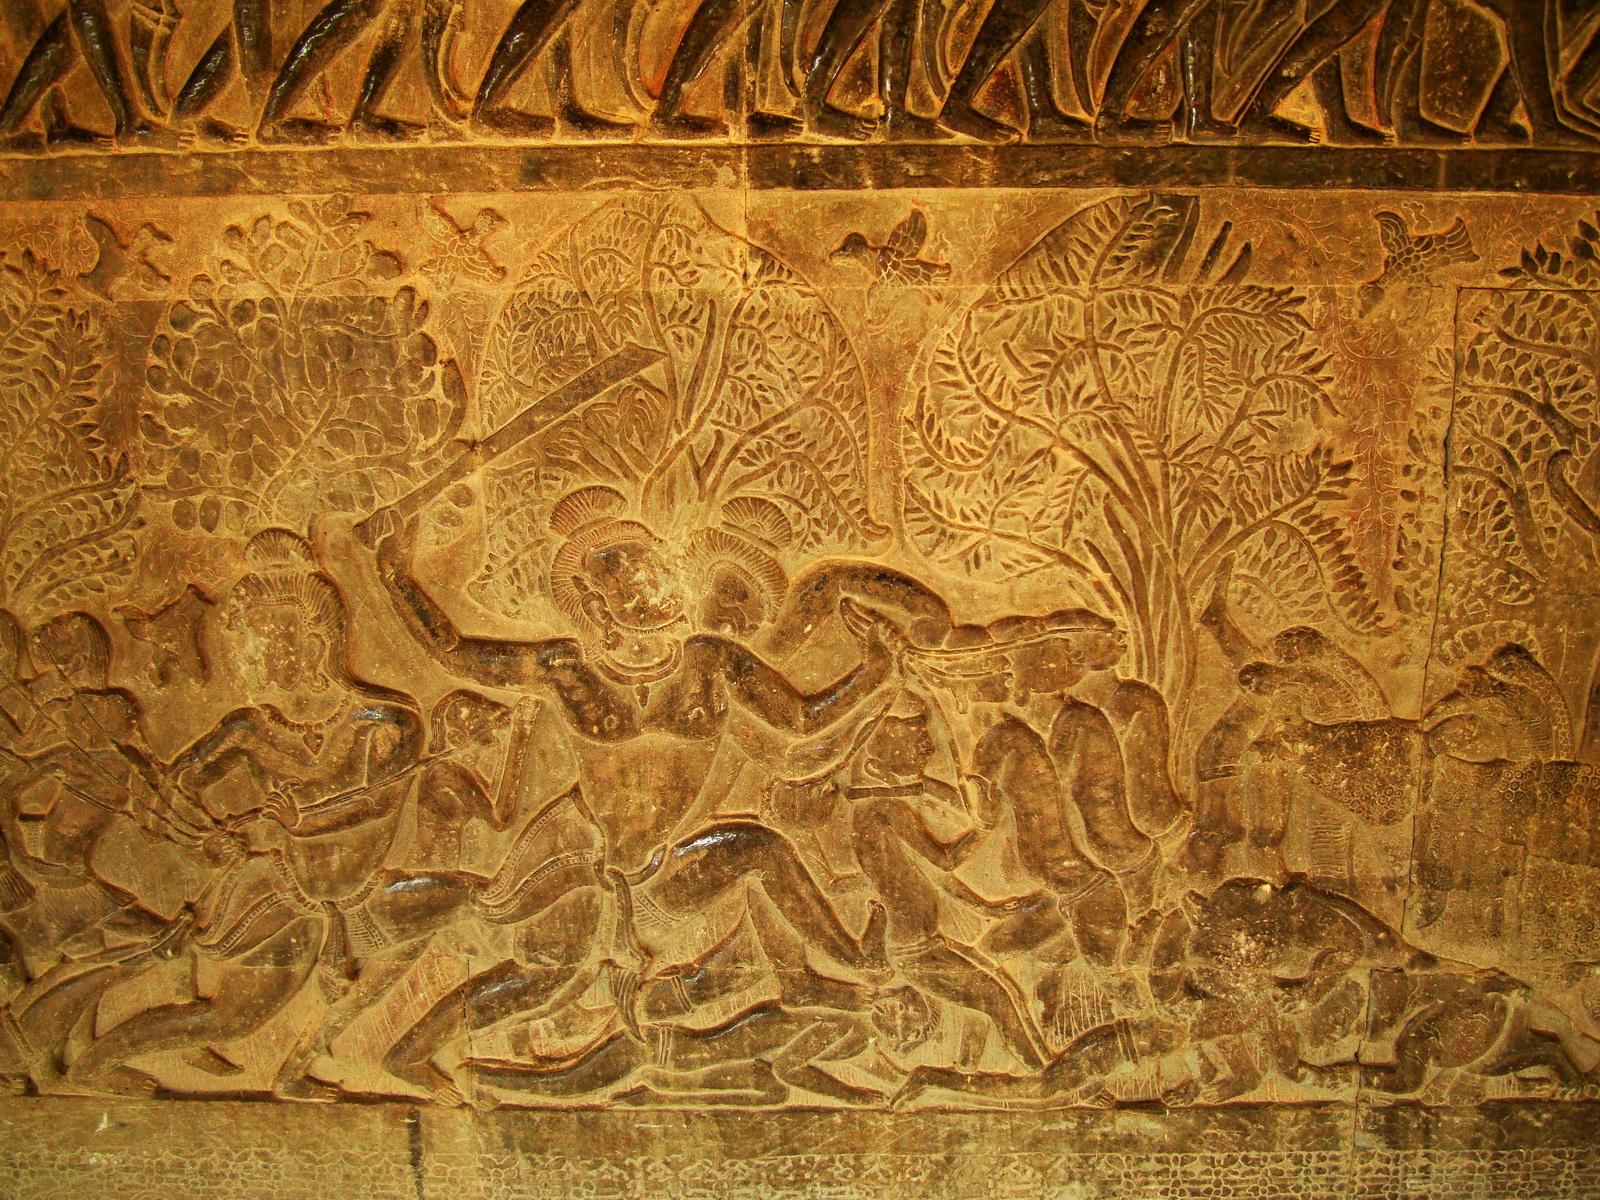 Angkor Wat Bas relief S Gallery E Wing Heavens and Hells 52